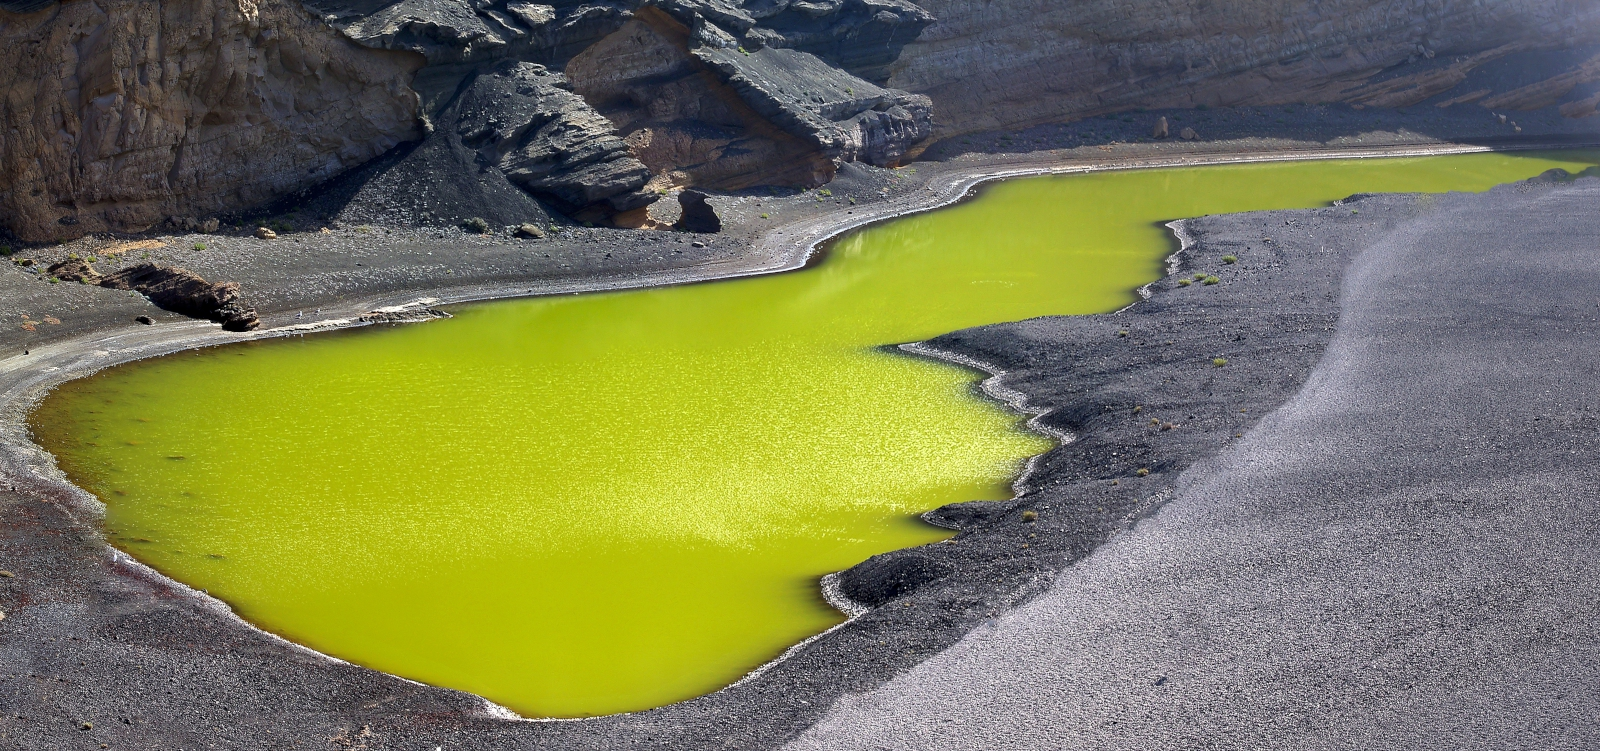 'the volcanic lake of El Golfo on Lanzarote island' - Lanzarote